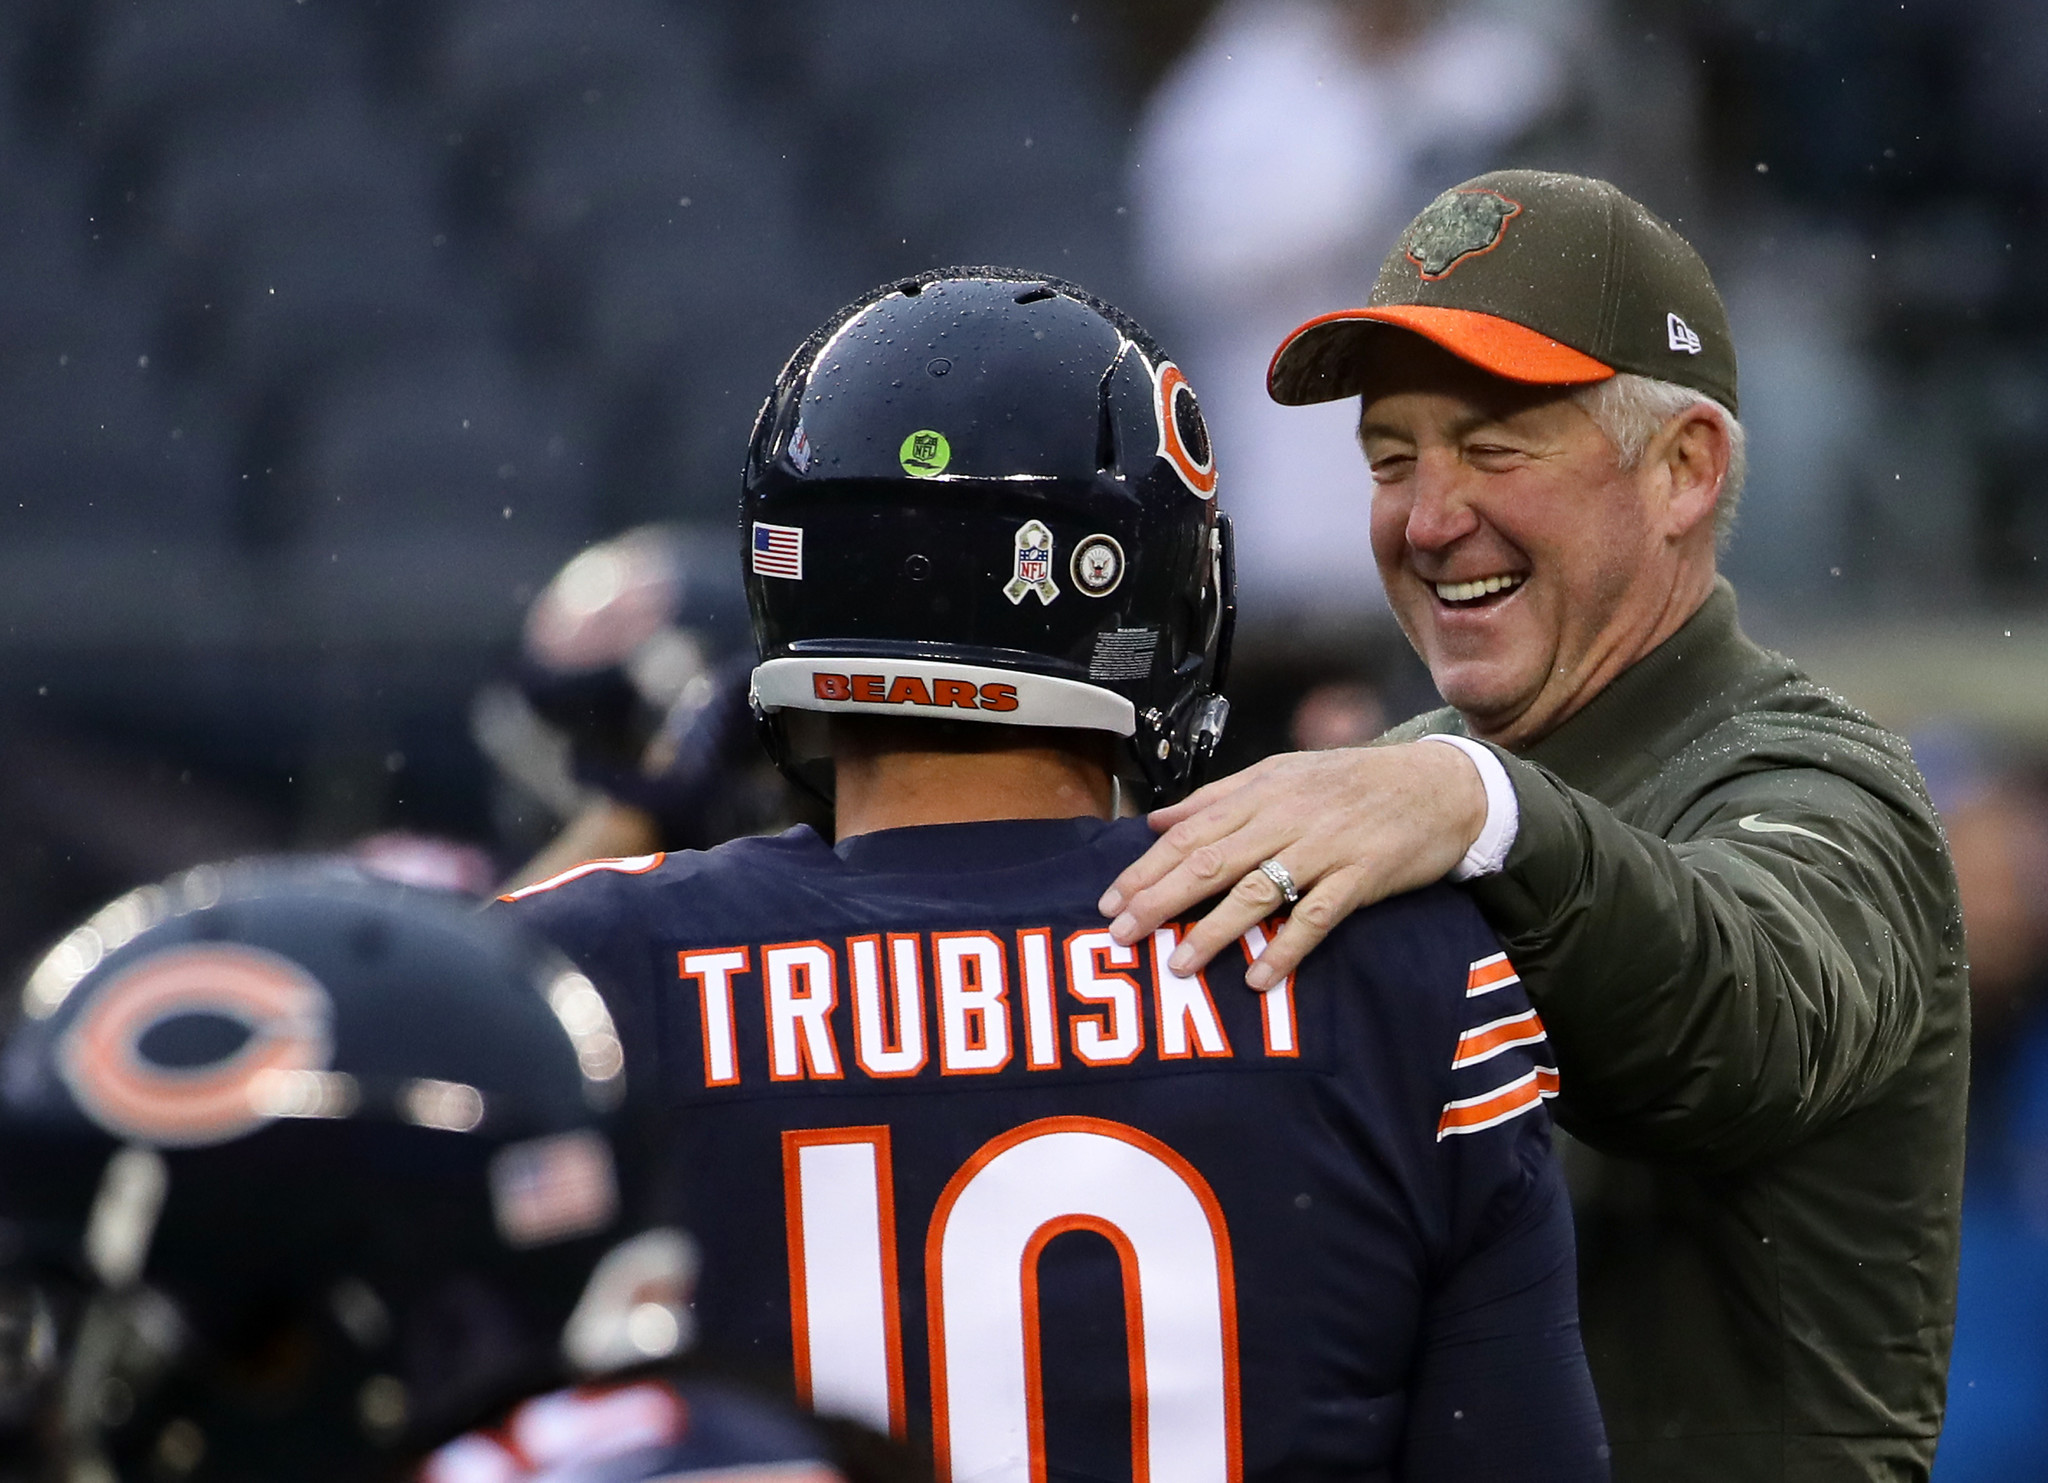 Ct-is-mitch-trubisky-bad-now-rosenbloom-20171117